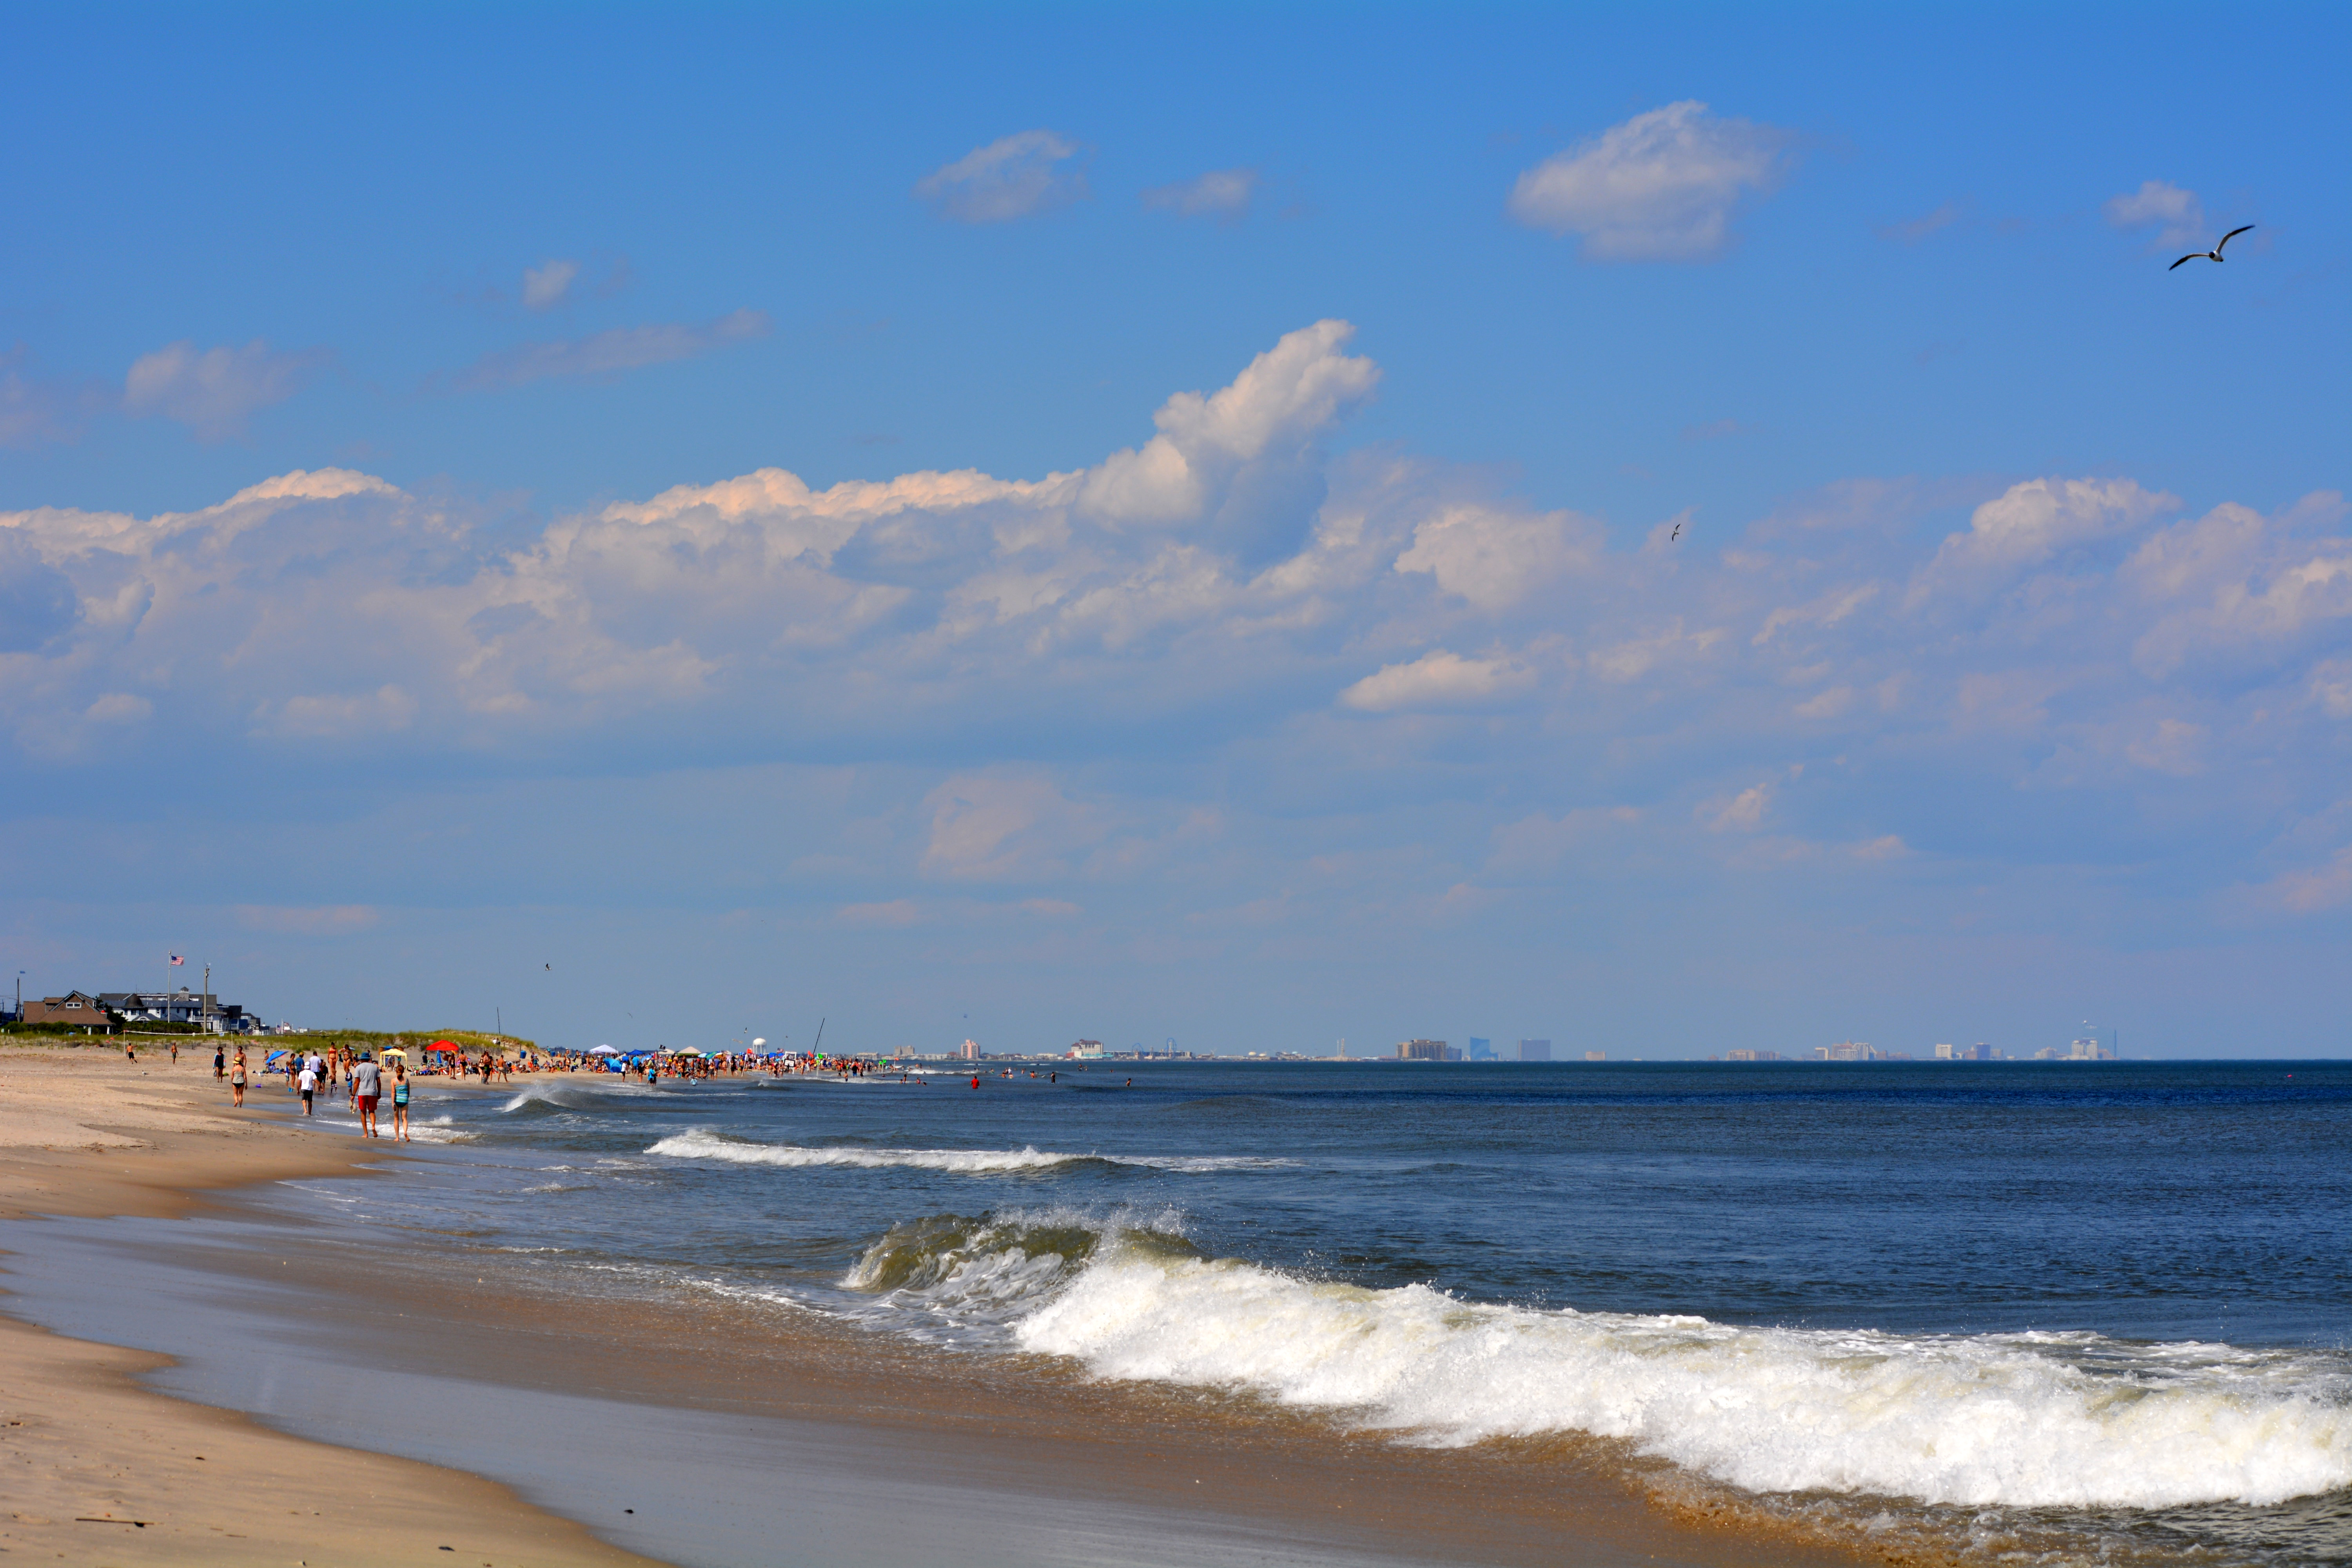 The view of a busy shore with Atlantic City in the background